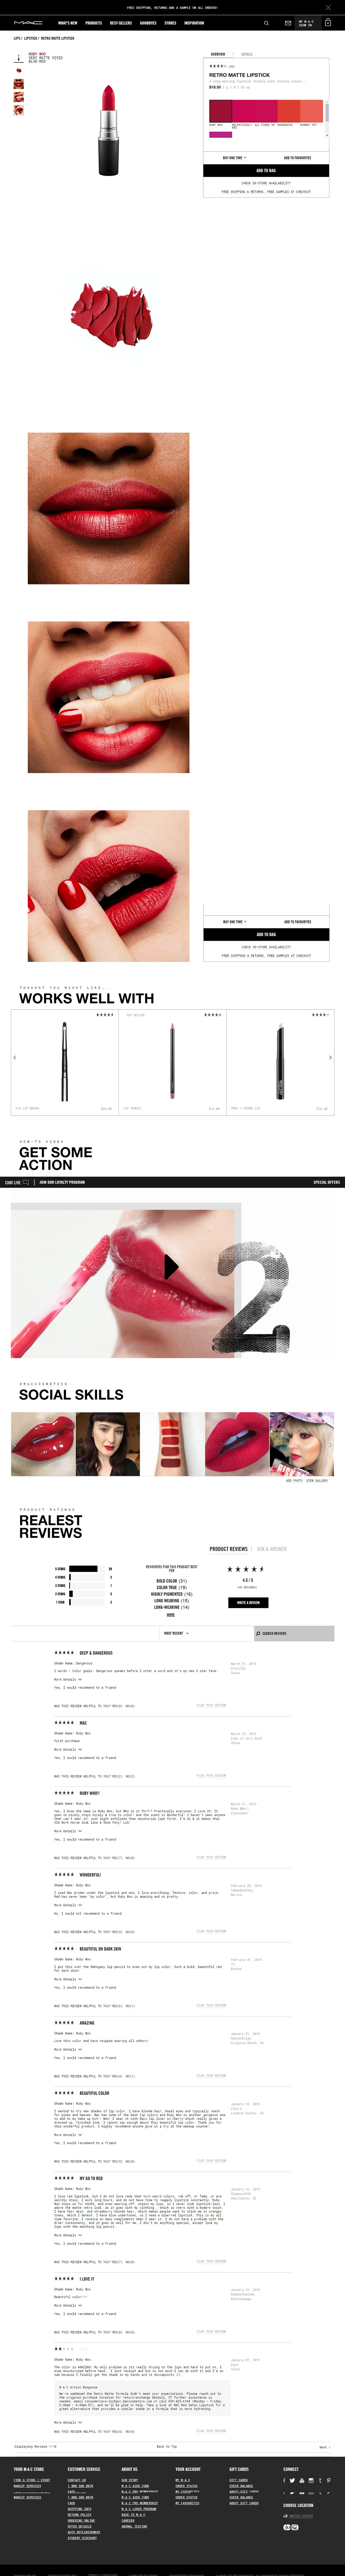 Product Page Optimization by M.A.C Ruby Woo Lipstick